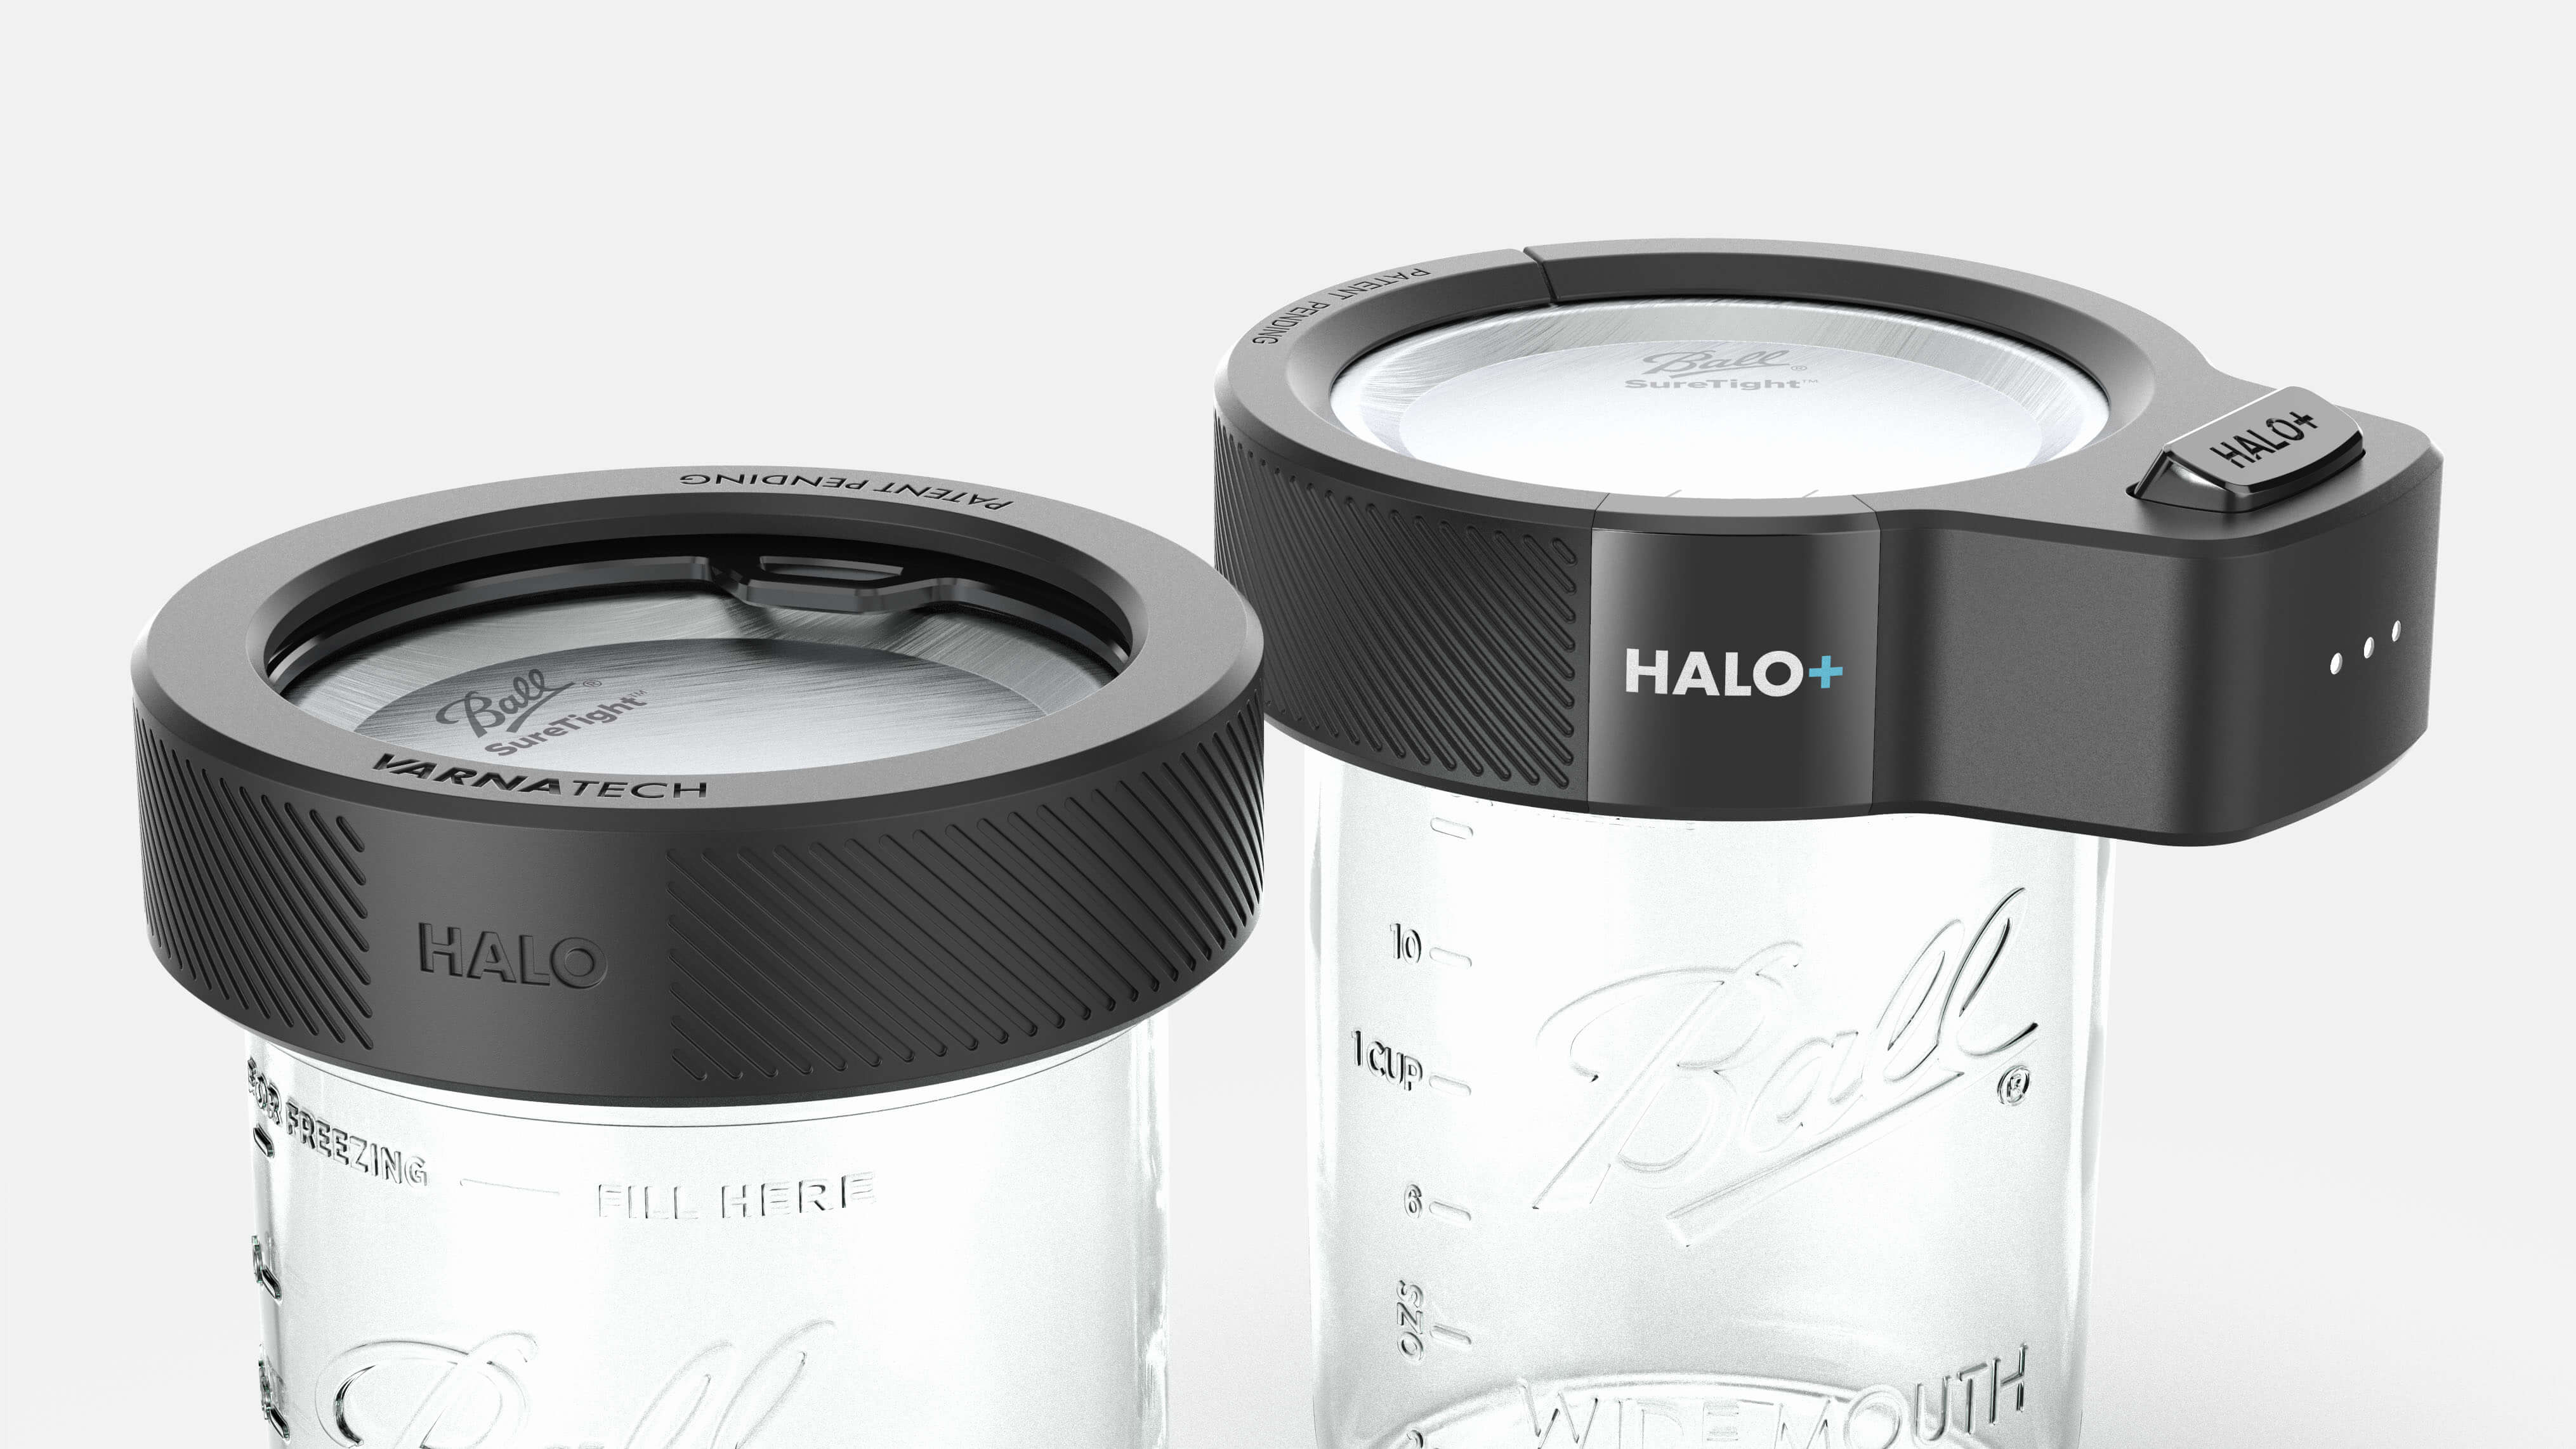 3D CAD Render by Sprout Studios of Varna Tech Halo and Halo+ on Mason Jar